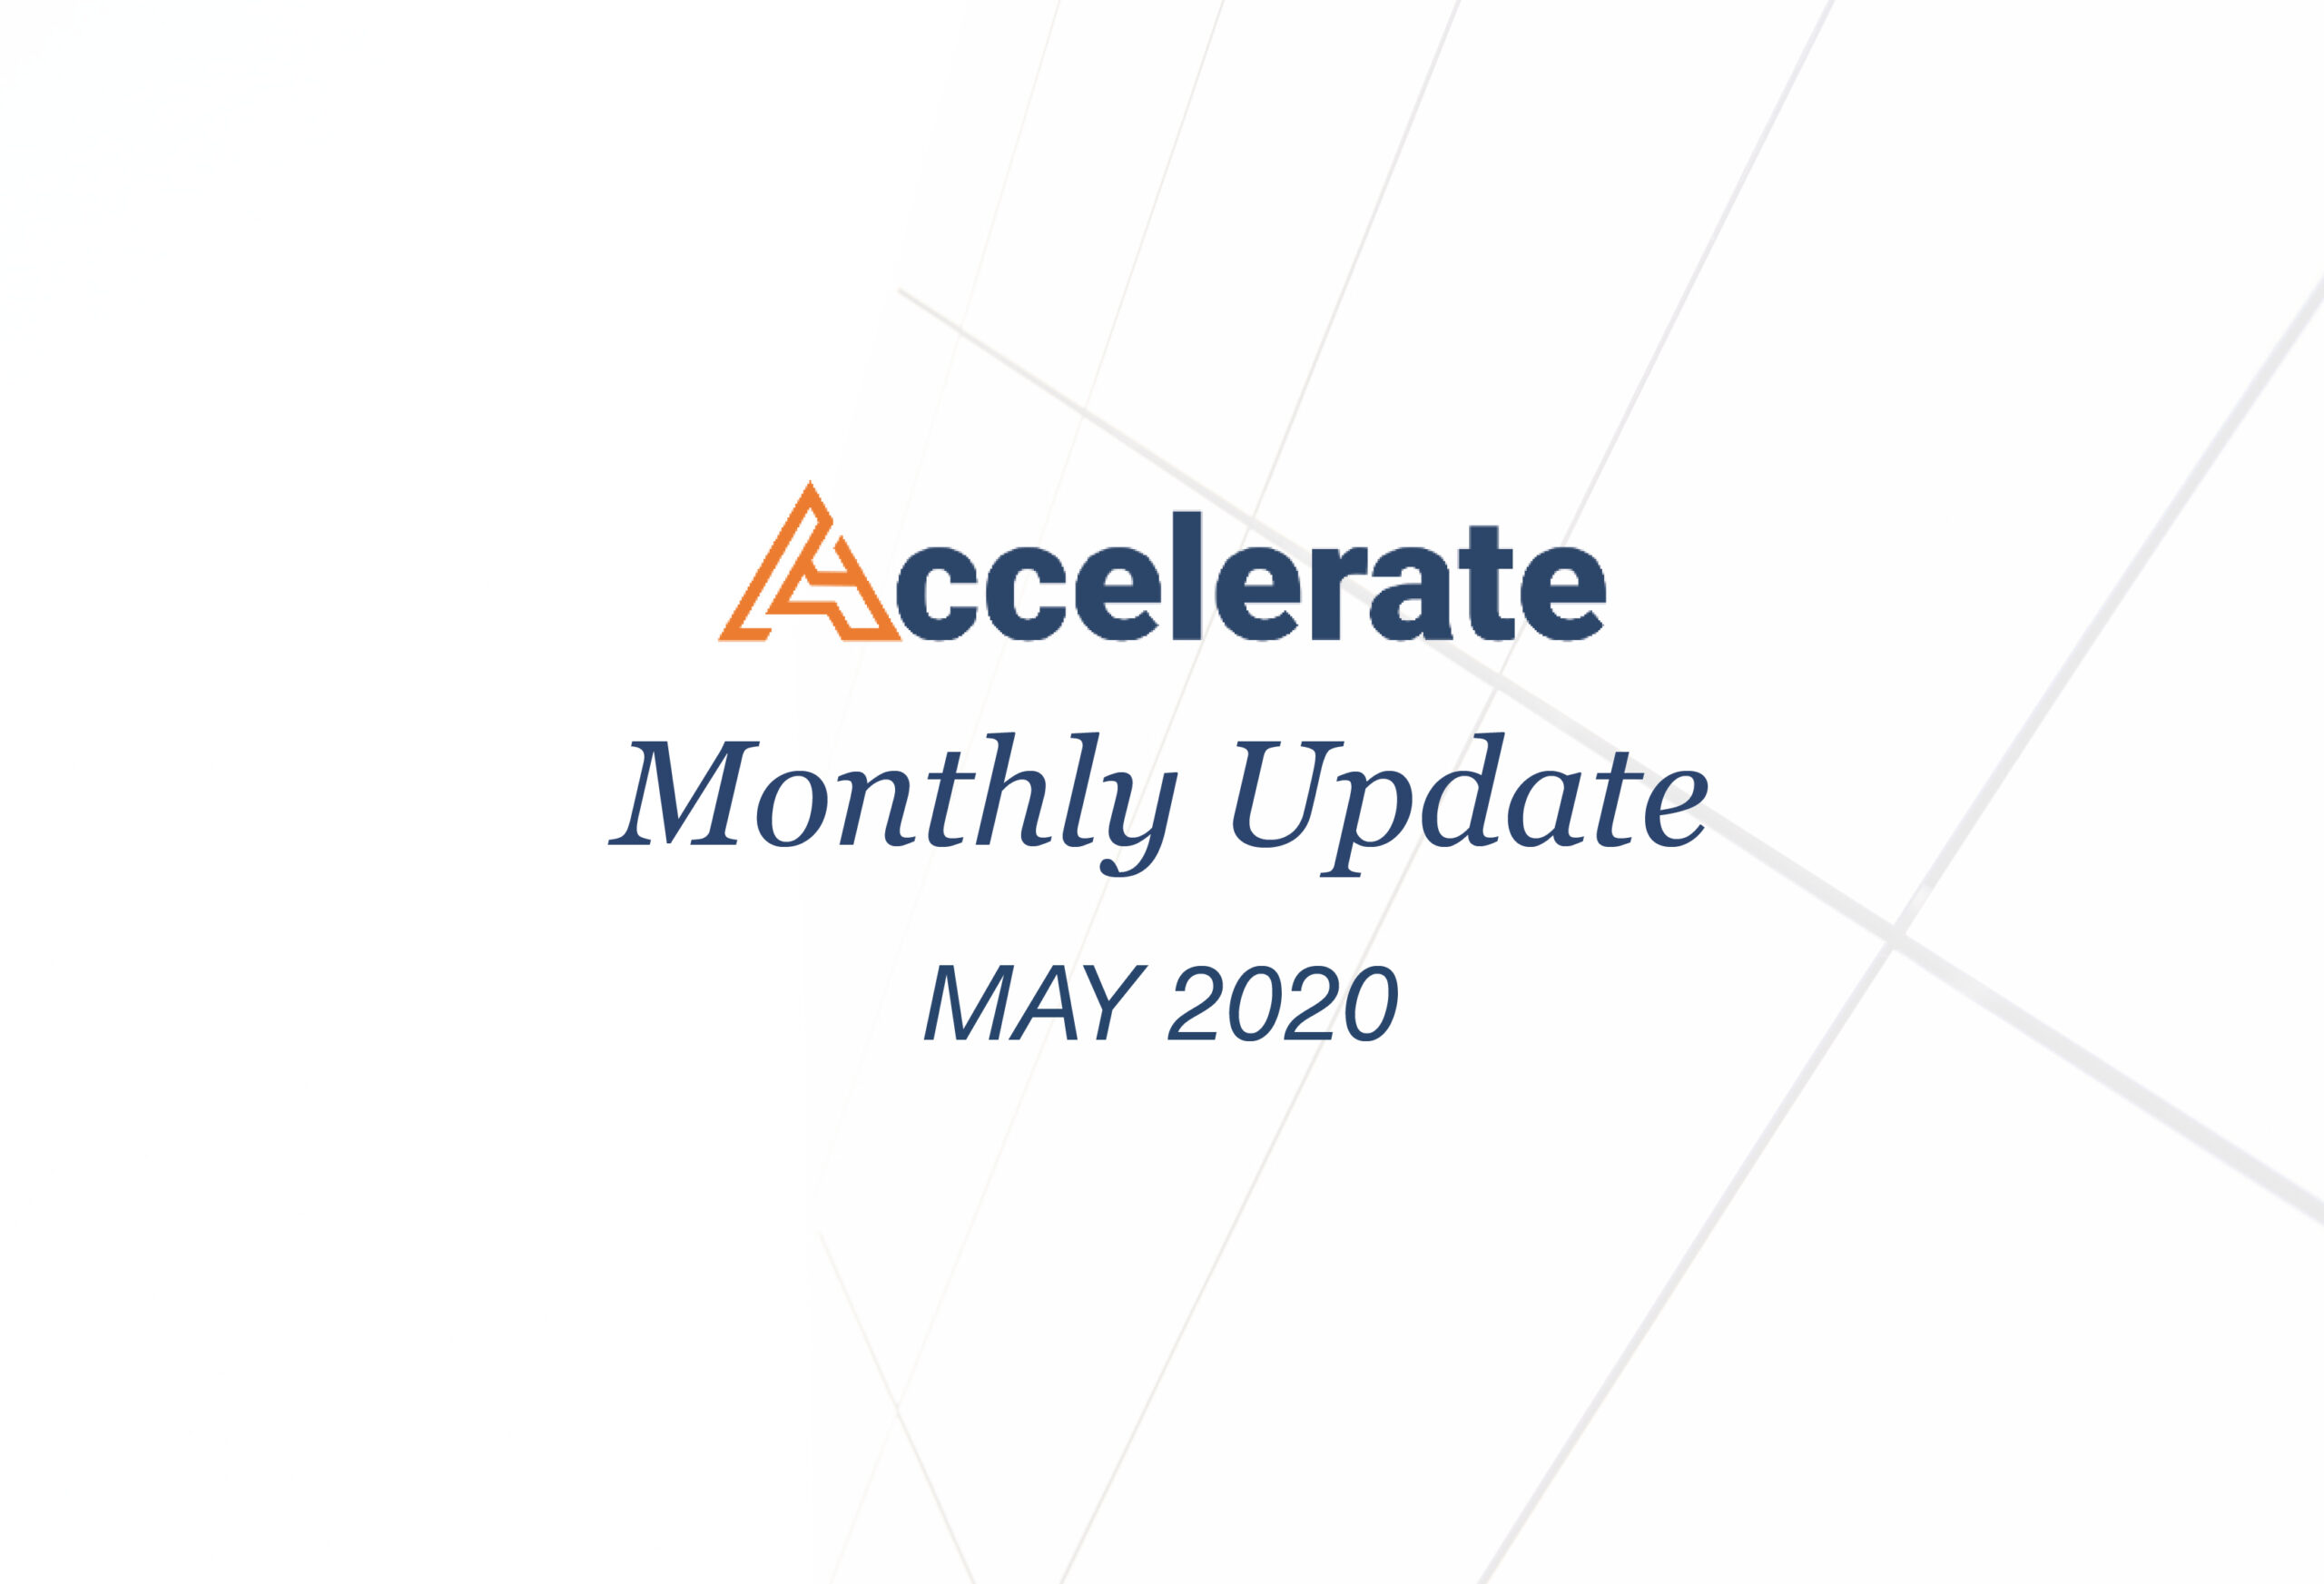 Accelerate Monthly Update – May 2020